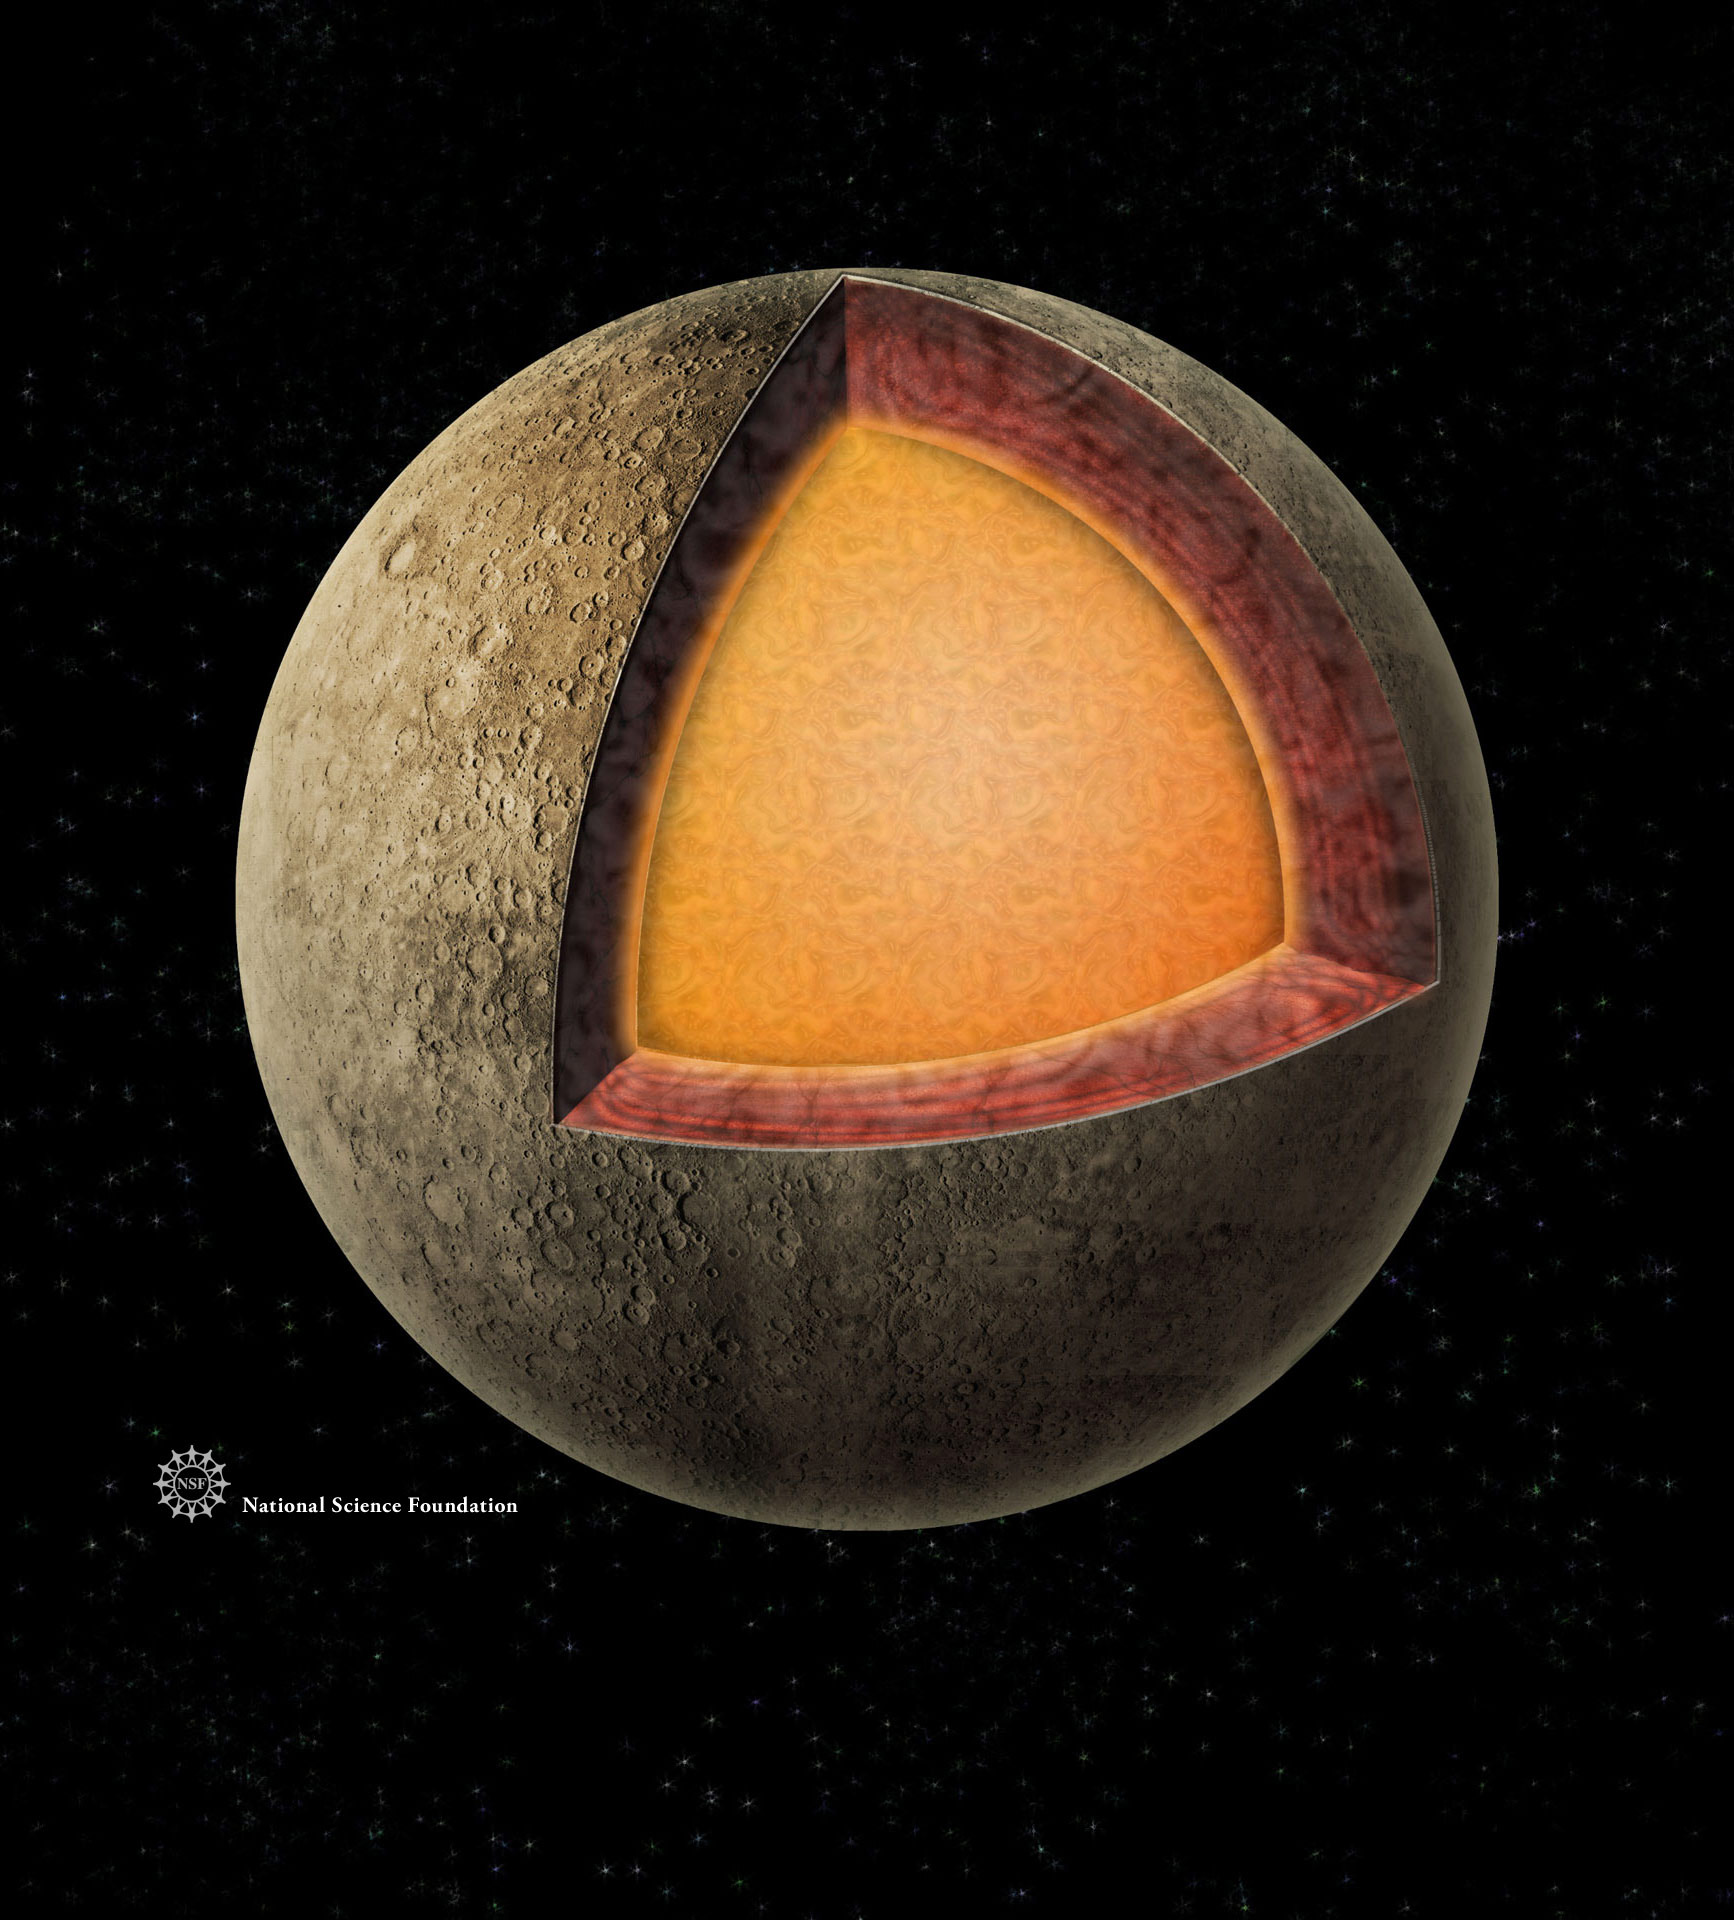 diagram of mercury planet drawing - photo #18